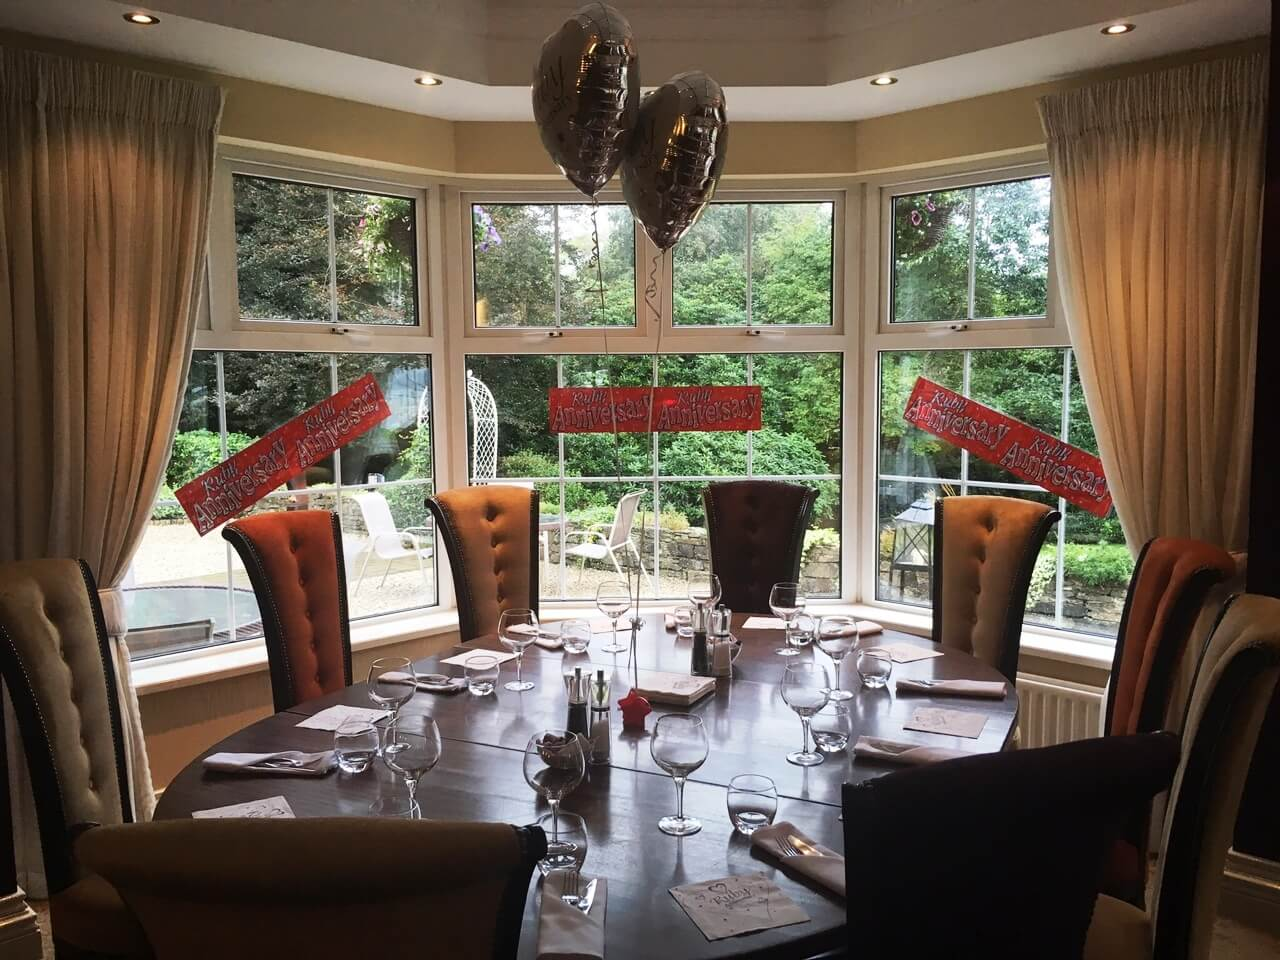 THE 10 BEST Lunch Restaurants in County Donegal